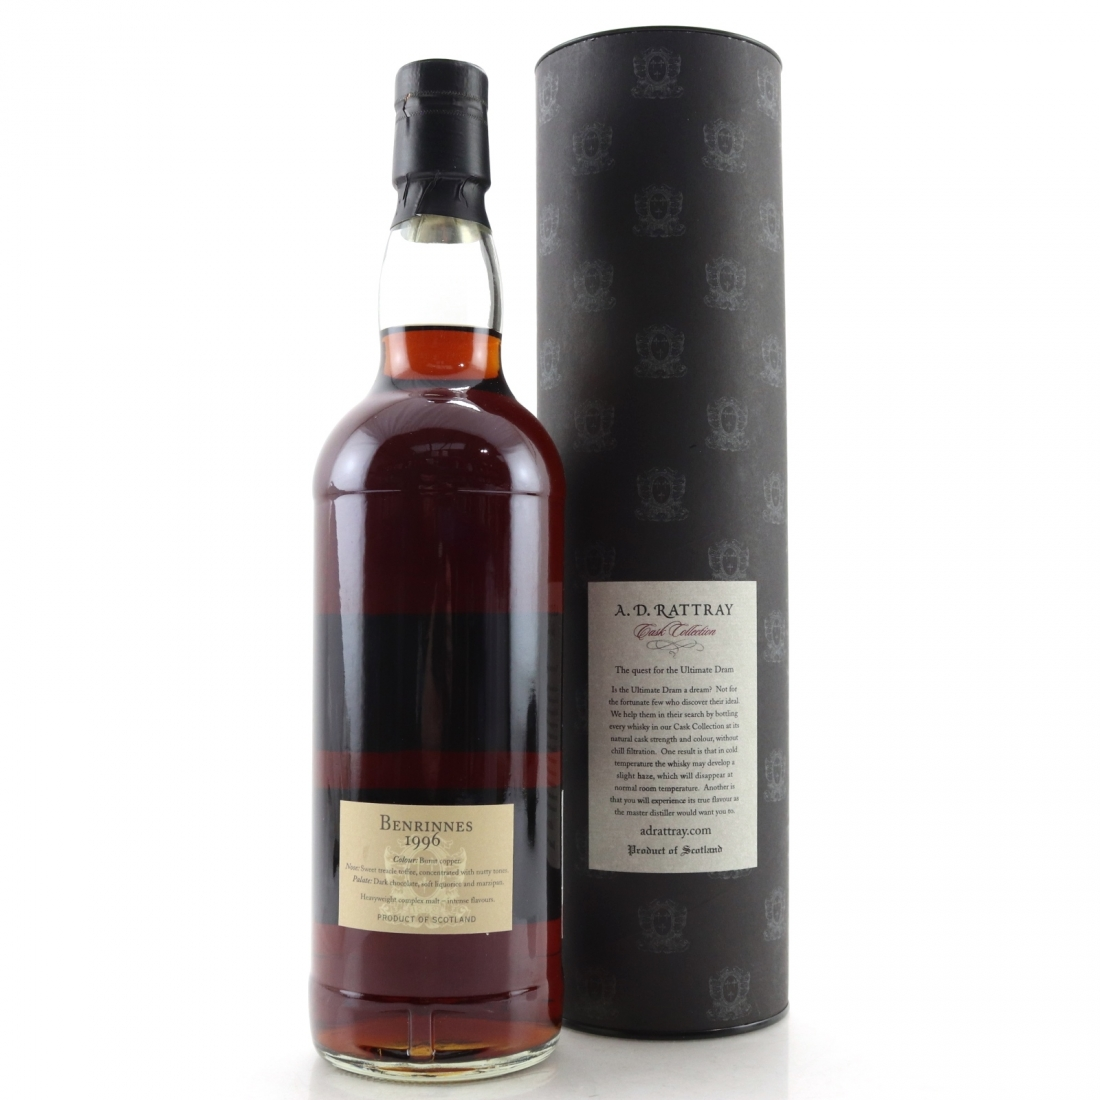 Benrinnes 1996 A.D. Rattray 13 Year Old / Alba Import, Germany